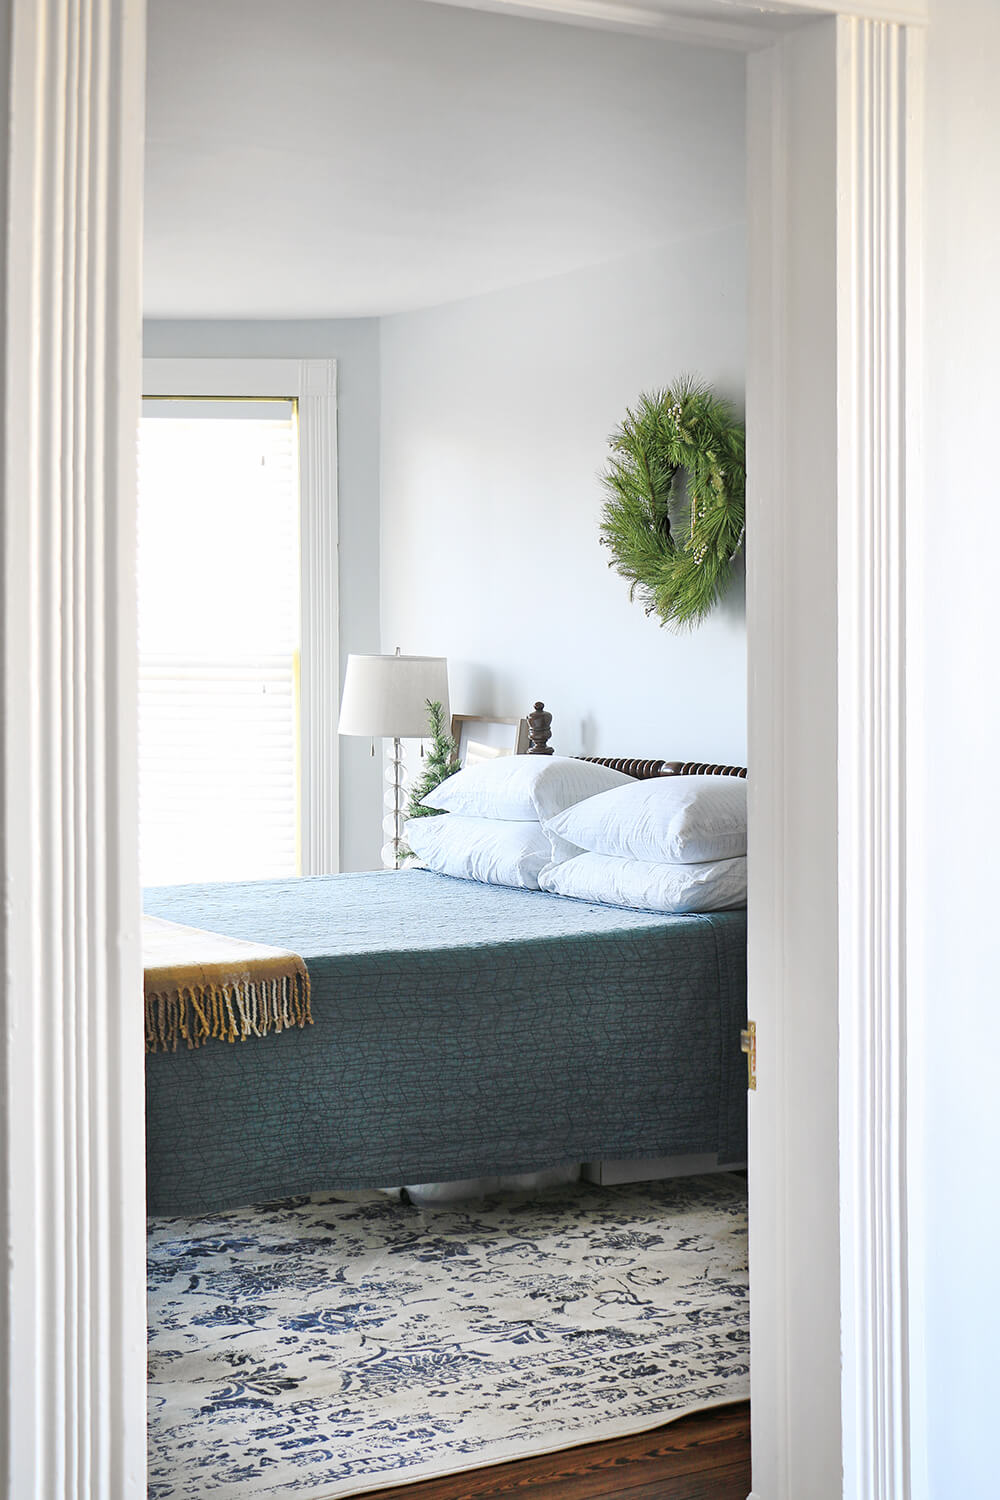 Guest bedroom with wreath